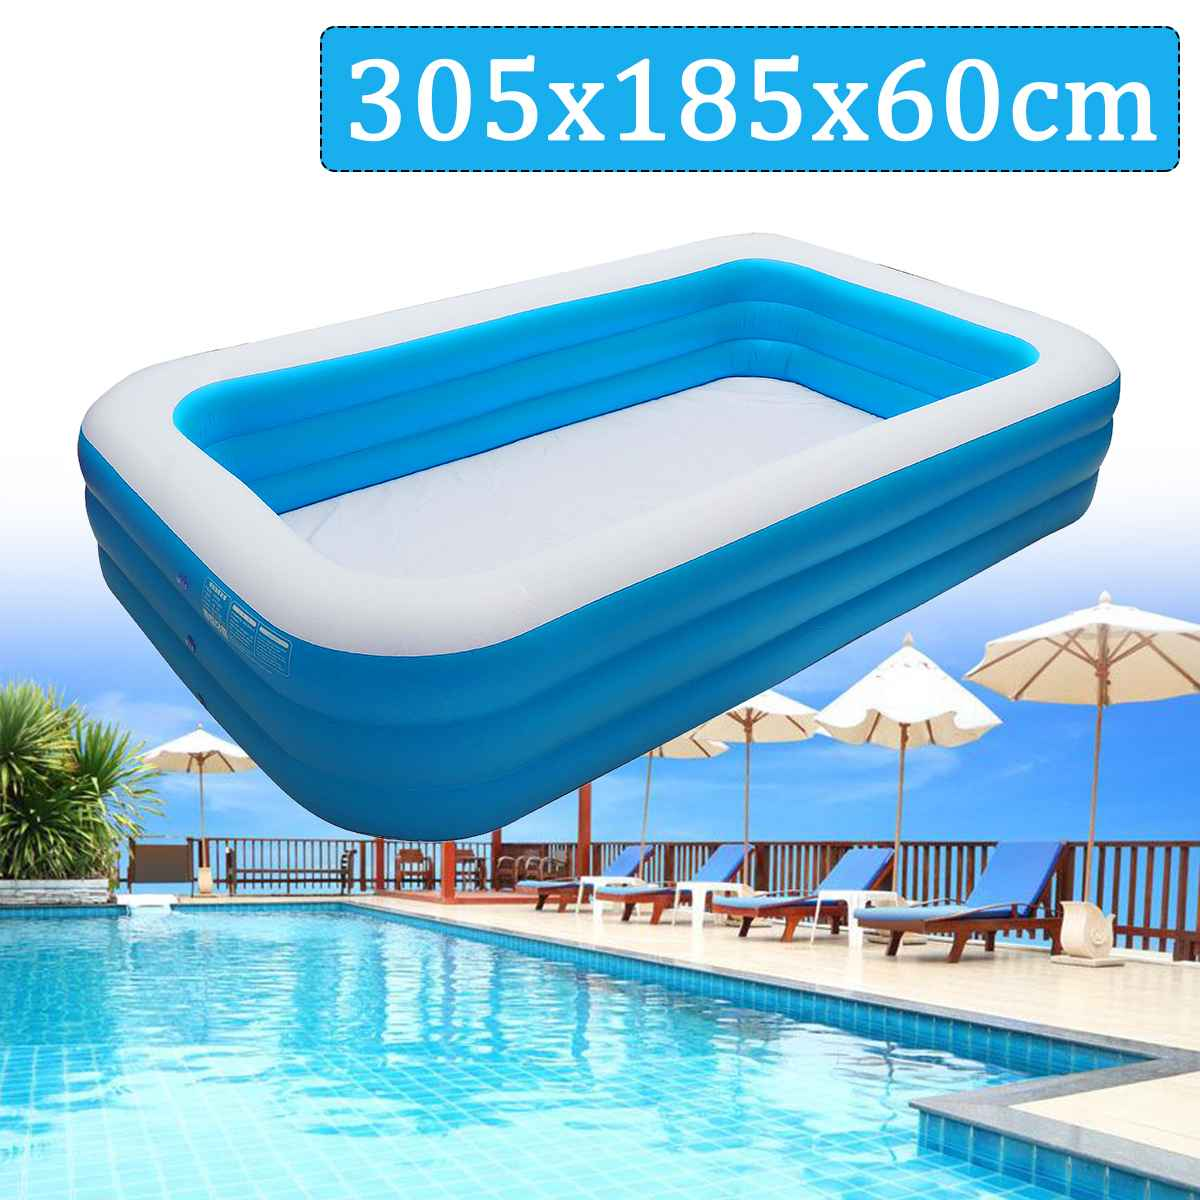 Kids inflatable Pool 305x185x60cm Childrens Home Use Paddling Pool Large Size Inflatable Square Swimming Pool Heat PreservationKids inflatable Pool 305x185x60cm Childrens Home Use Paddling Pool Large Size Inflatable Square Swimming Pool Heat Preservation